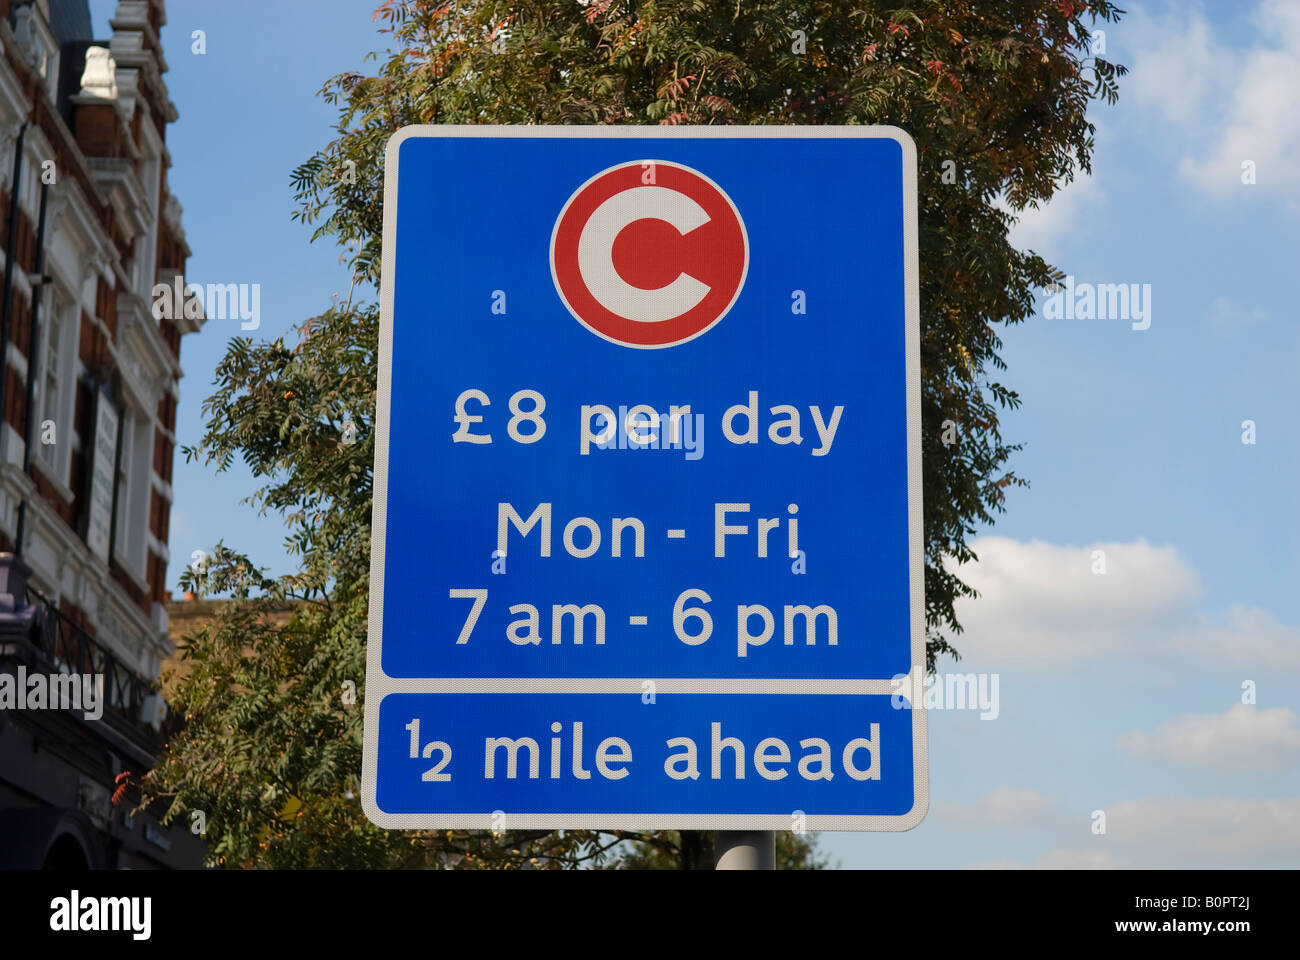 Sign indicating the beginning of the Congestion Charge Zone in London. £8 per day Mon - Fri 7am - 6pm ½ - Stock Image